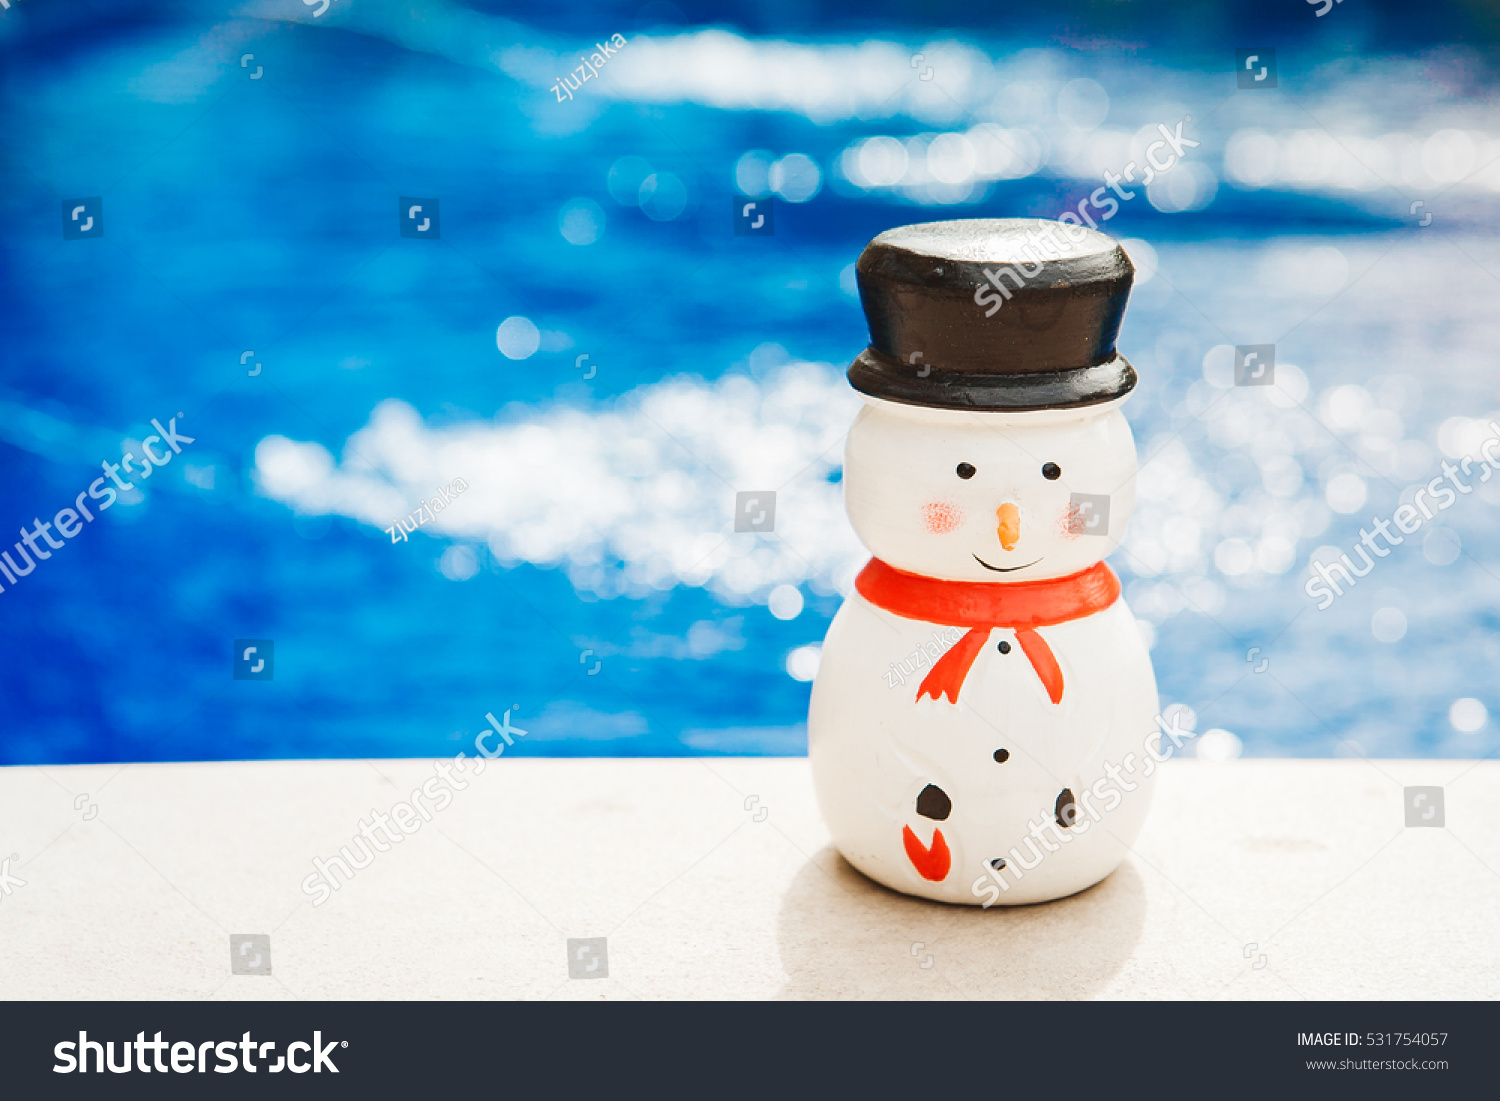 Wooden Christmas Decoration Blue Background Suitable Stock Photo ...